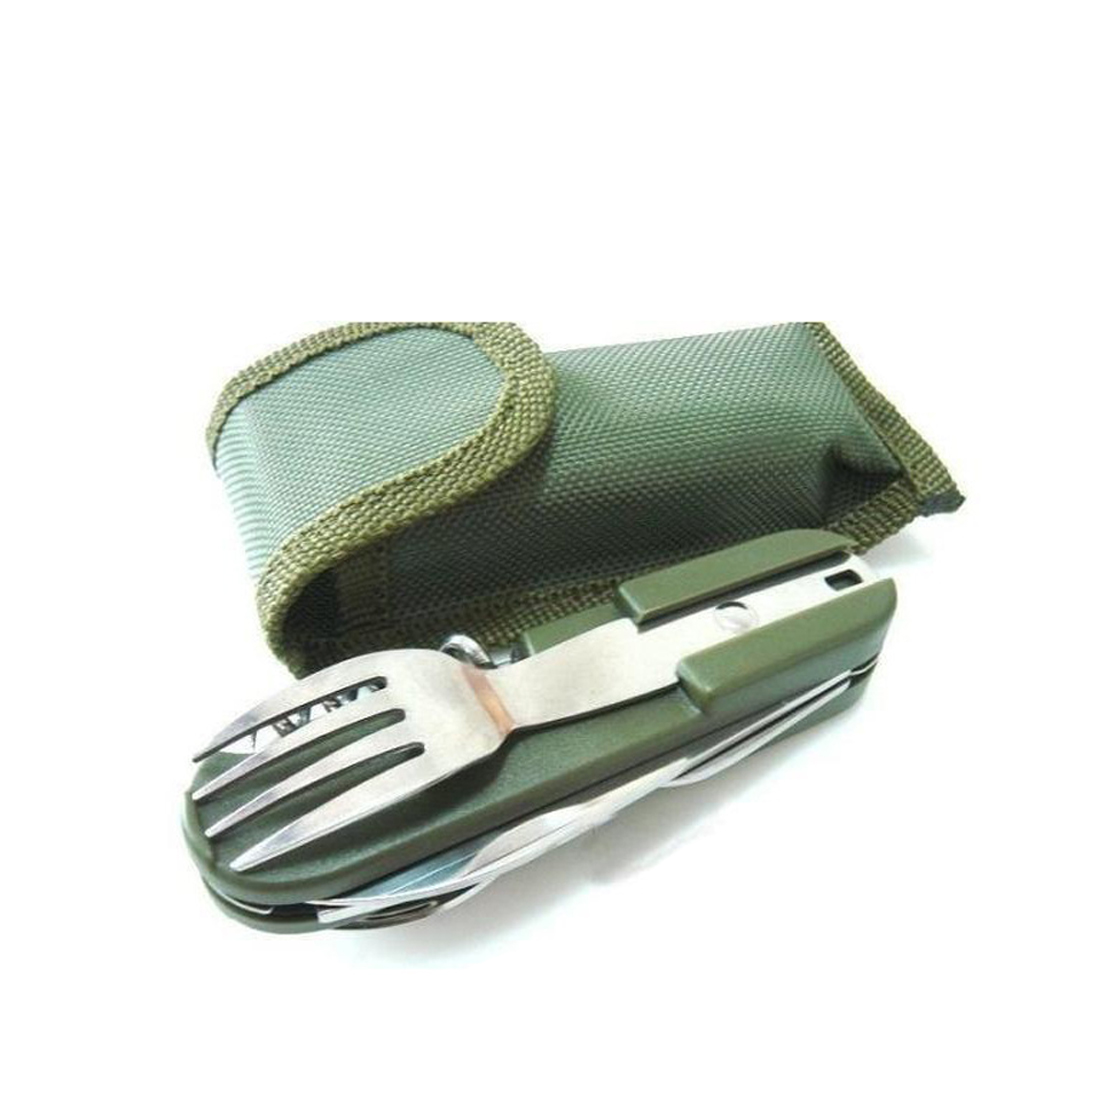 Hot Sell Army Green Folding Portable Stainless Steel Camping Picnic Cutlery Knife Fork Spoon Bottle Opener цена 2017